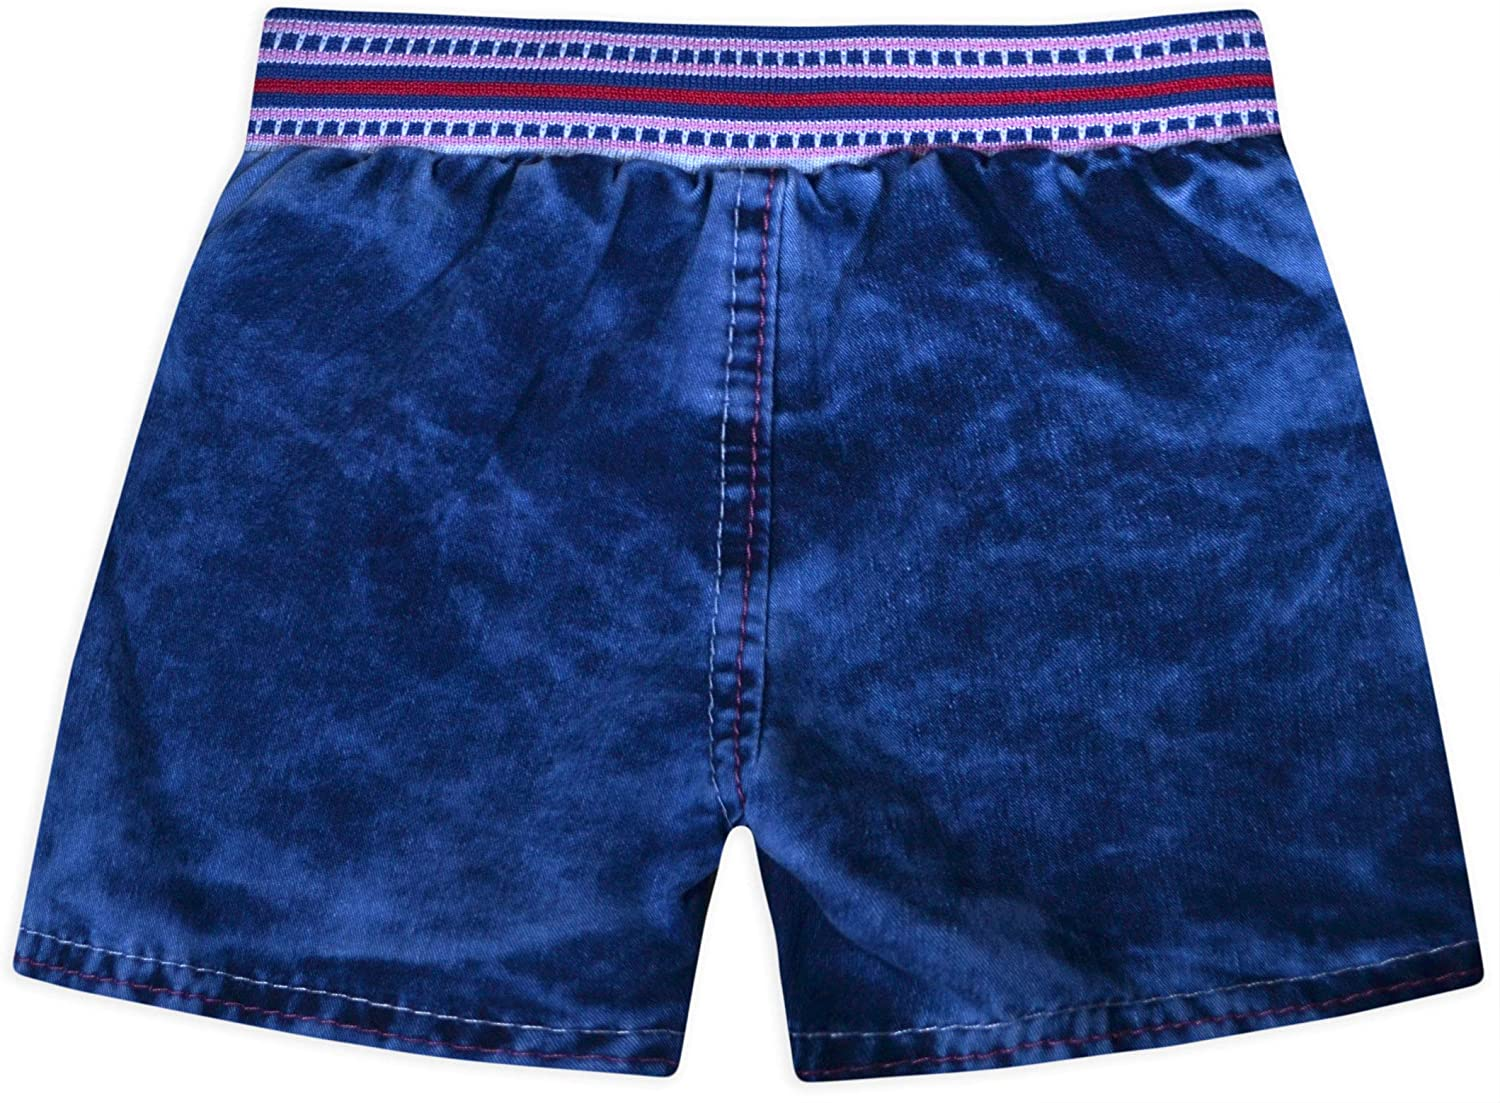 Machine Washable Summer jolly rascals Girls Shorts in Blue 100/% Cotton Embroidered Casual 12-18 Months